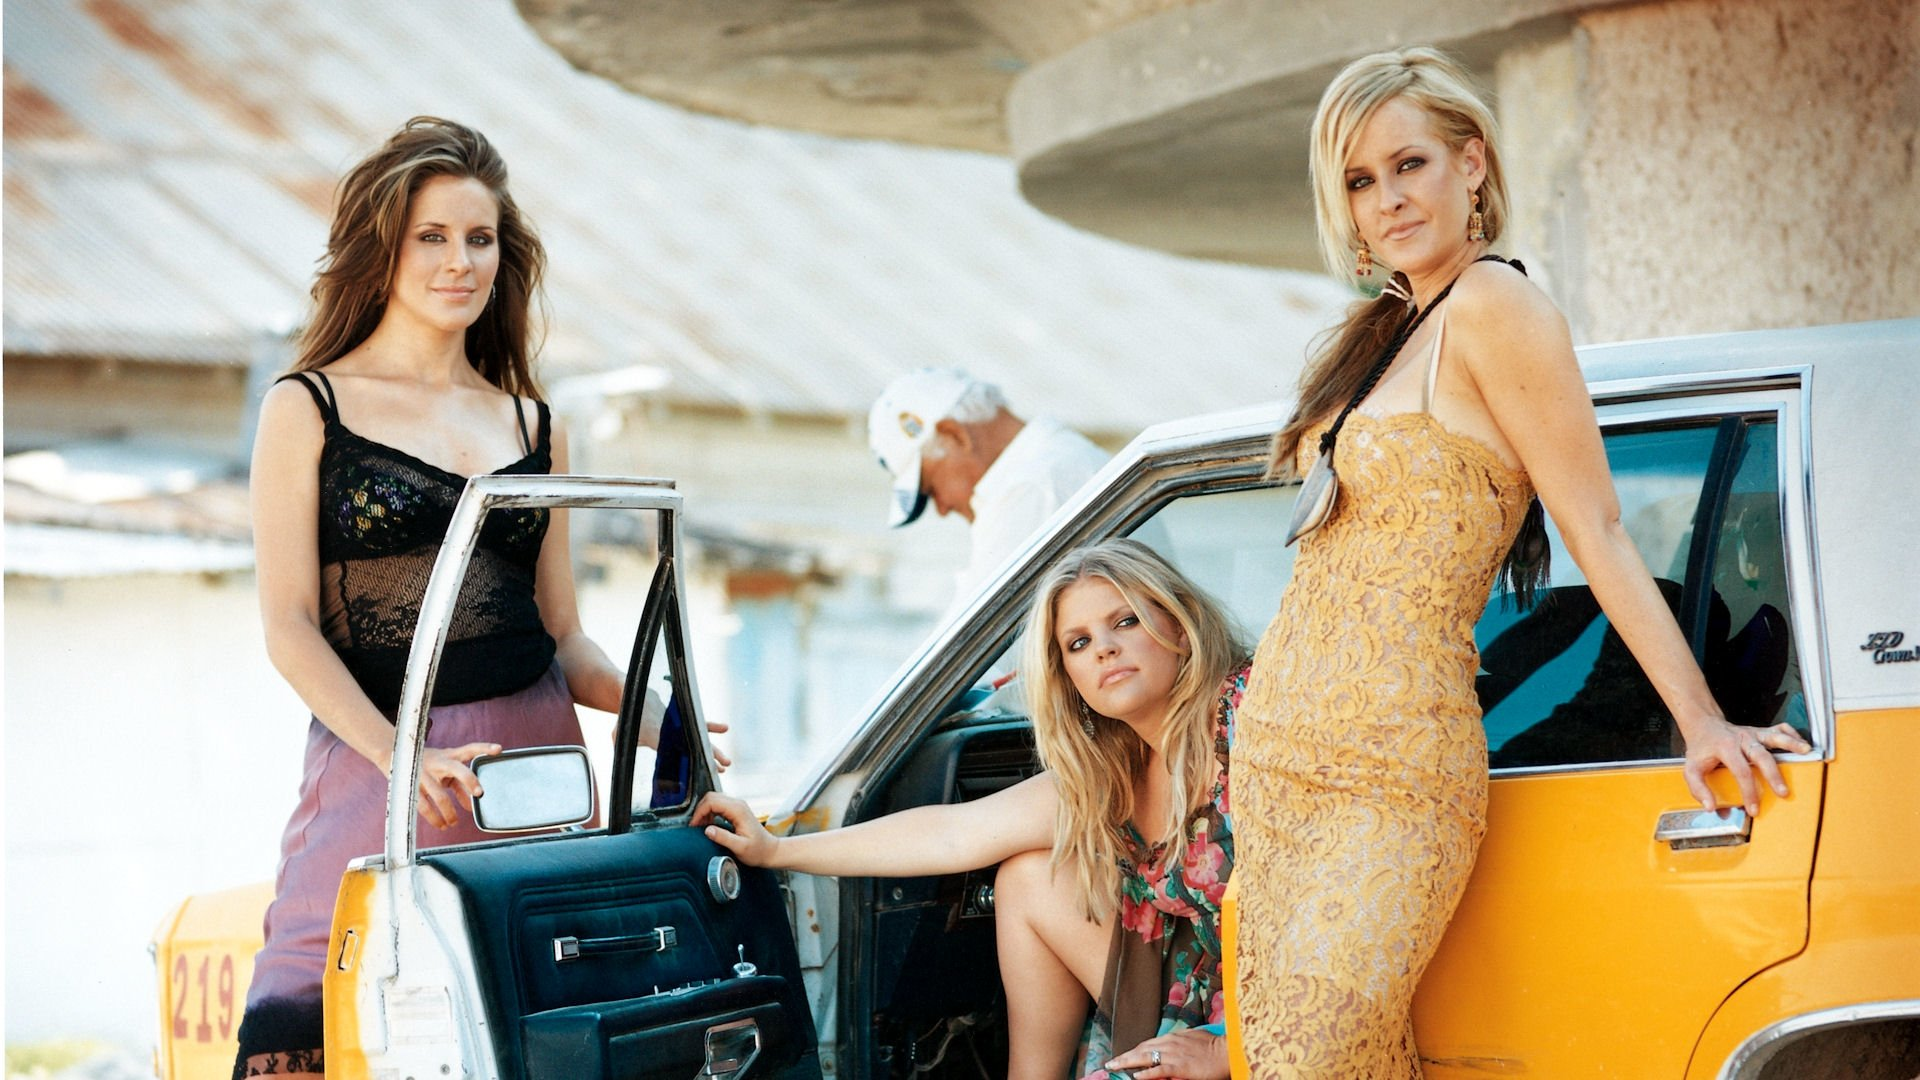 Dixie Chicks Computer Wallpapers, Desktop Backgrounds | 1920x1080 | ID ...